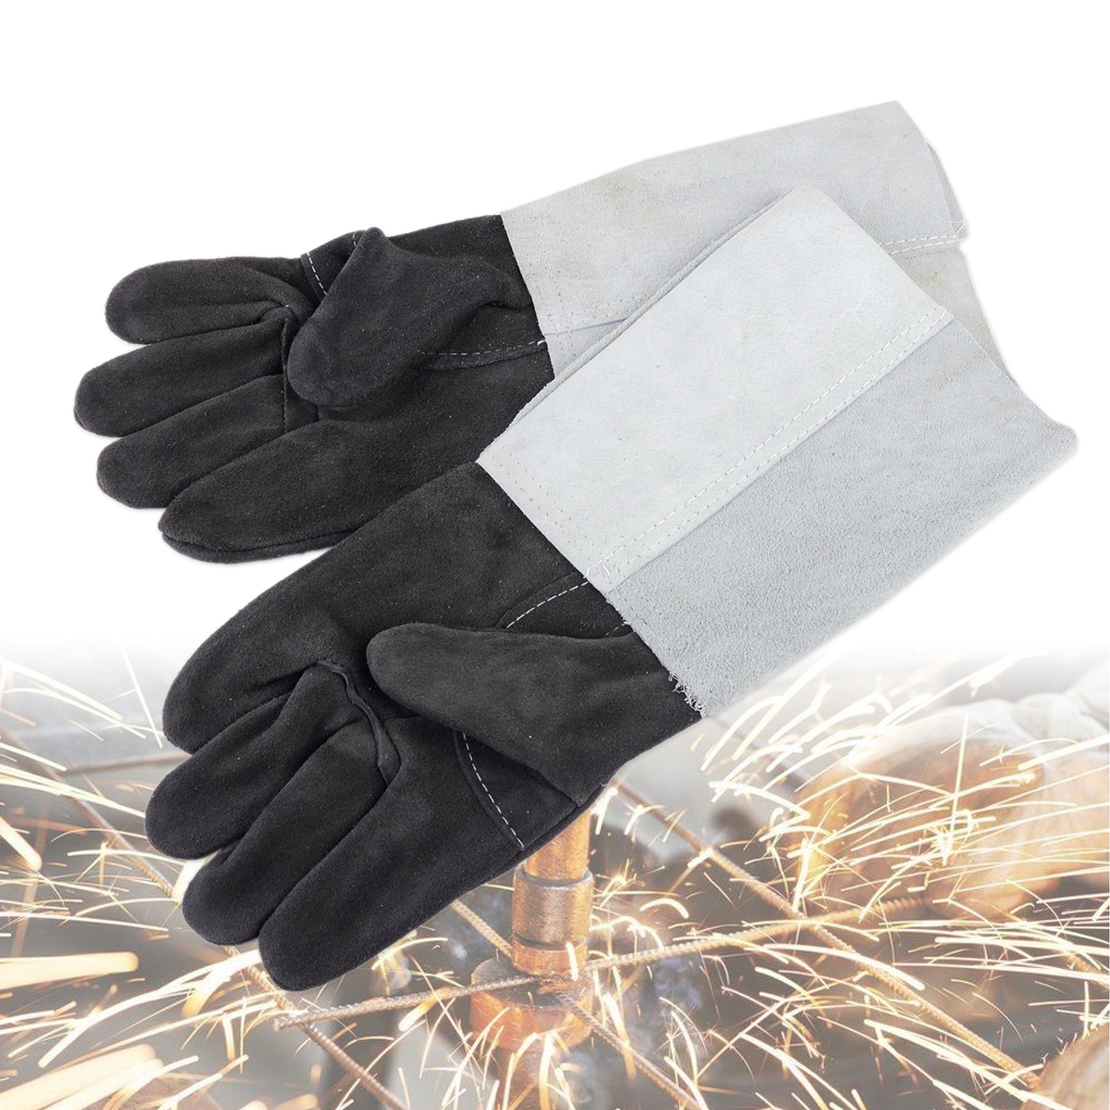 Soft Welding Cowhide Leather Plus Gloves Heat Shield Cover Guard Safe